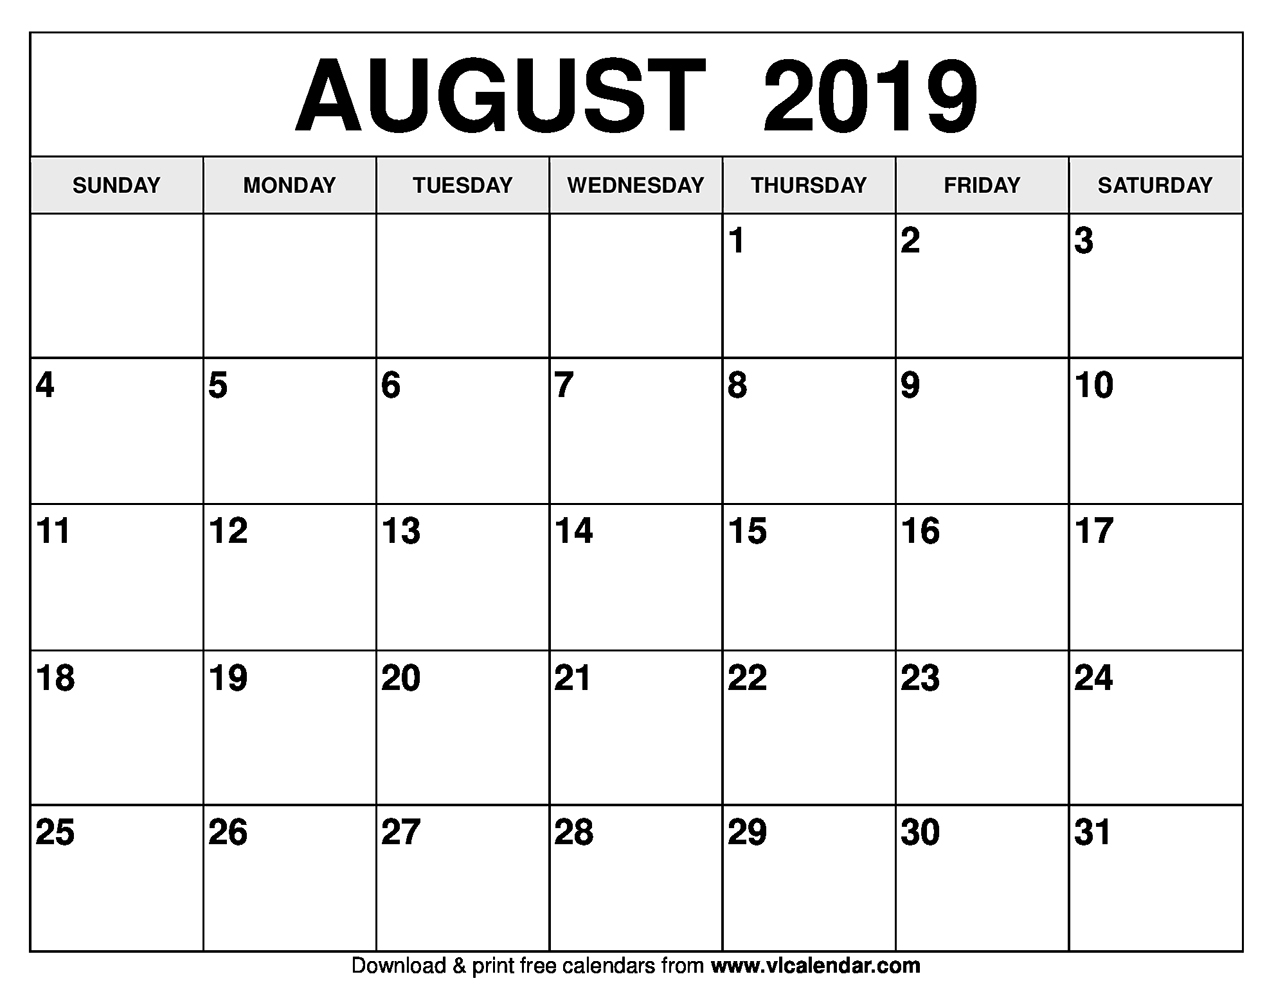 August 2019 Calendar Printable Templates within Blank Calendars For August